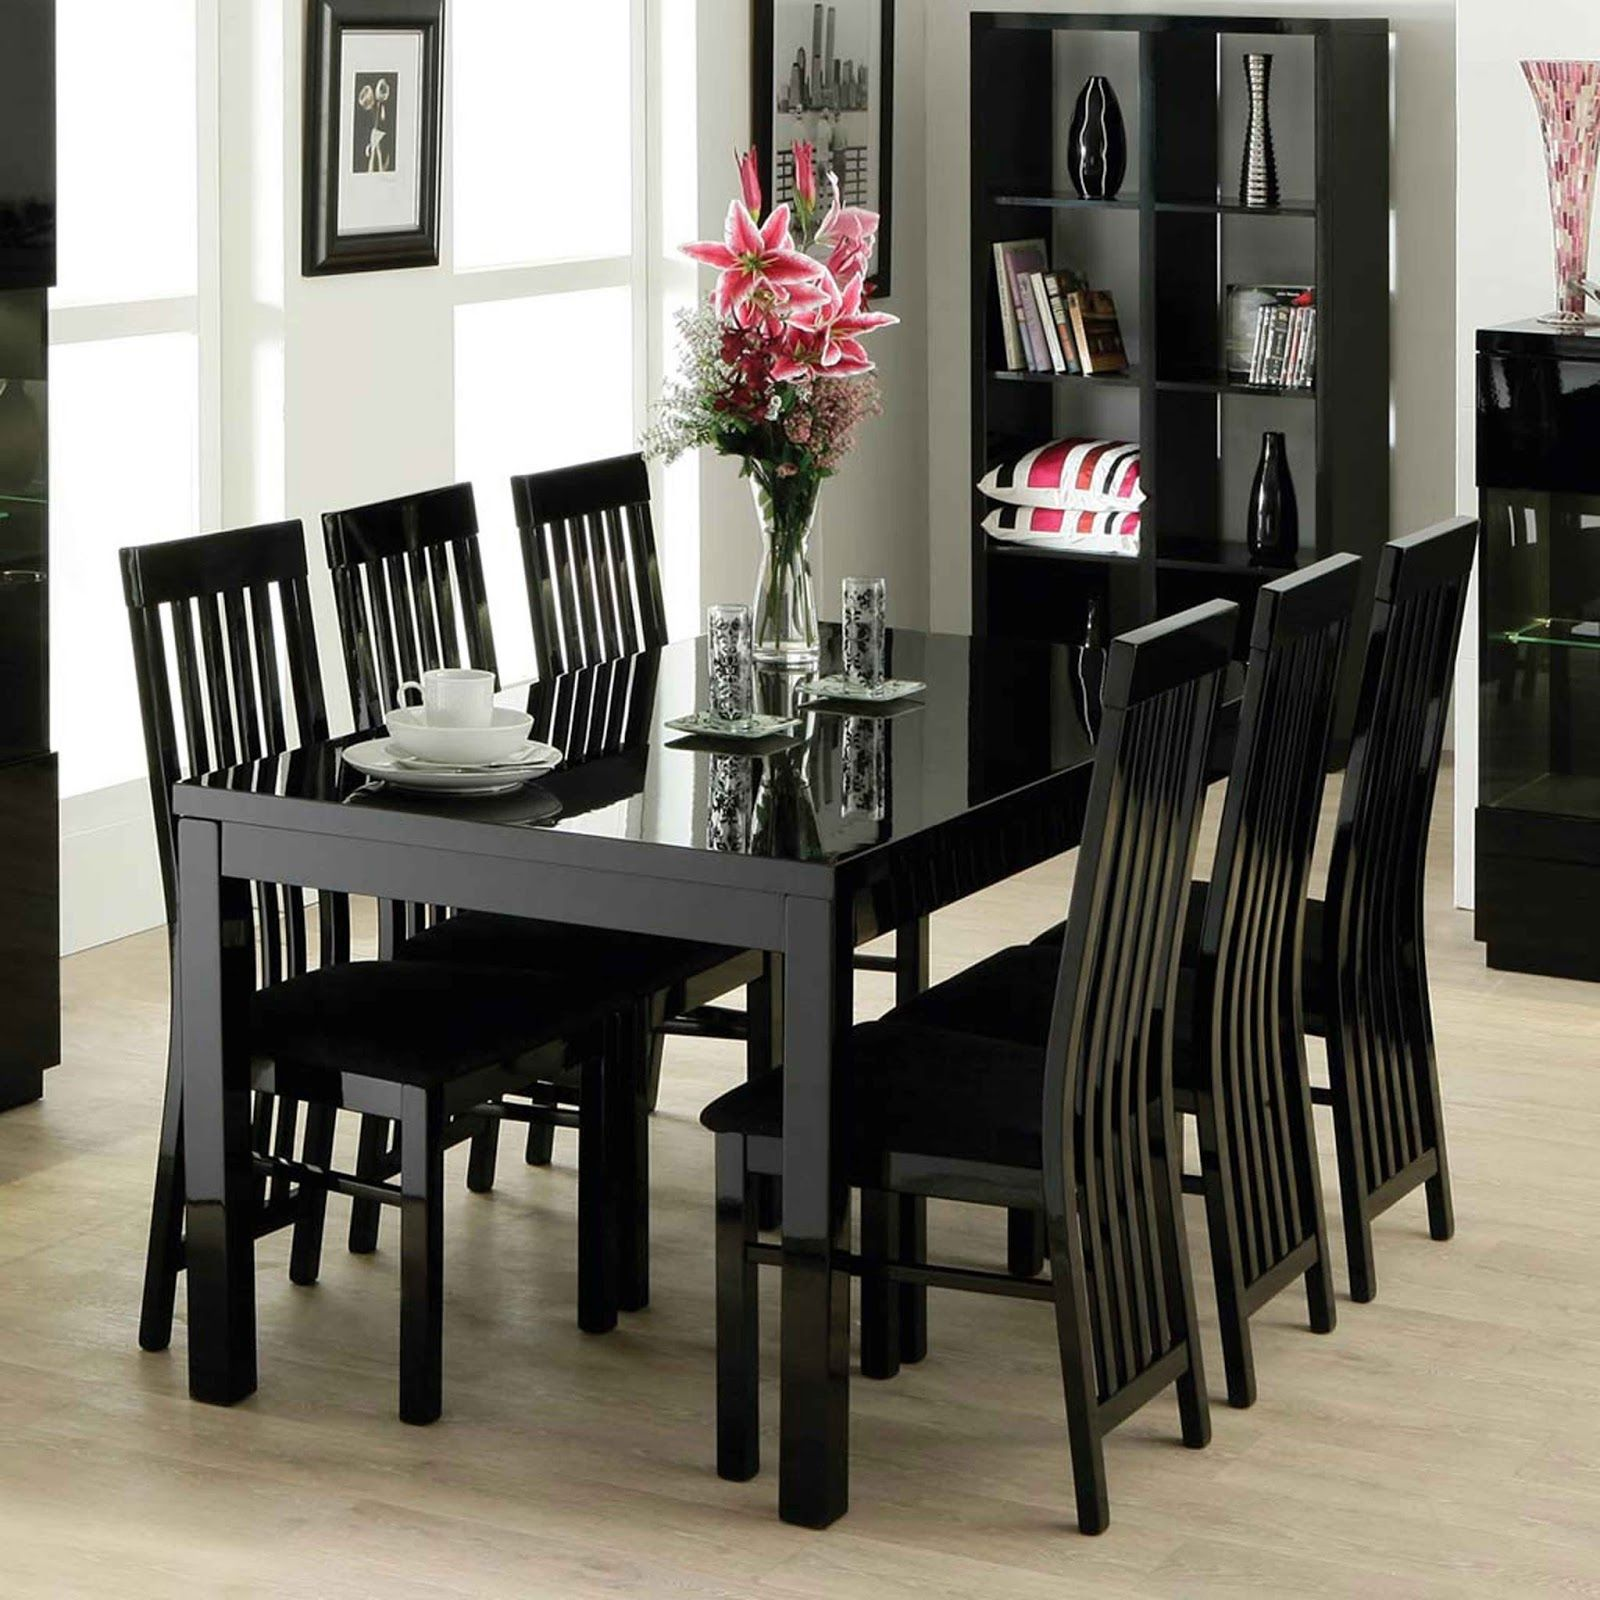 Black Dining Room Furniture Decorating Ideas Contemporary Dining Room Sets Dining Room Table Centerpieces Black Dining Room